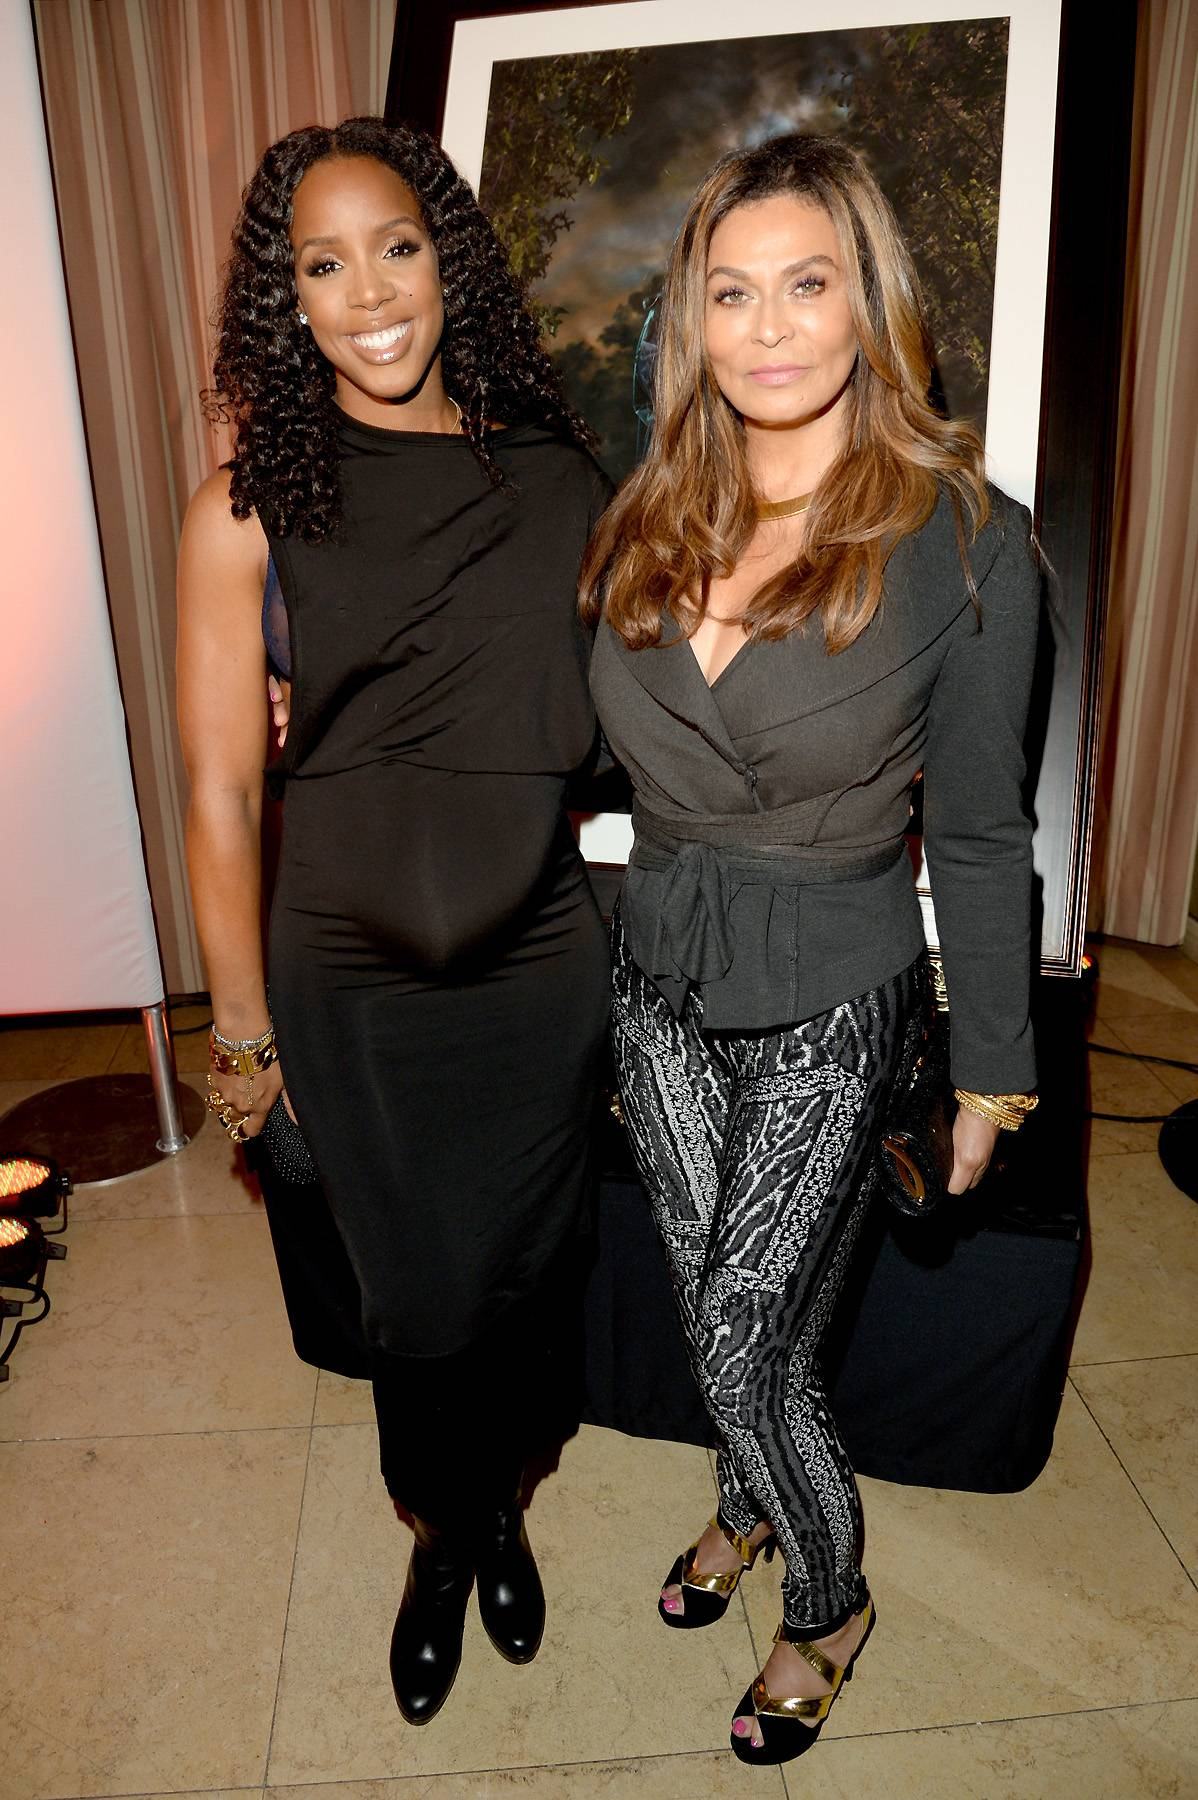 071614-celebs-out-kelly-rowland-tina-knowles.jpg